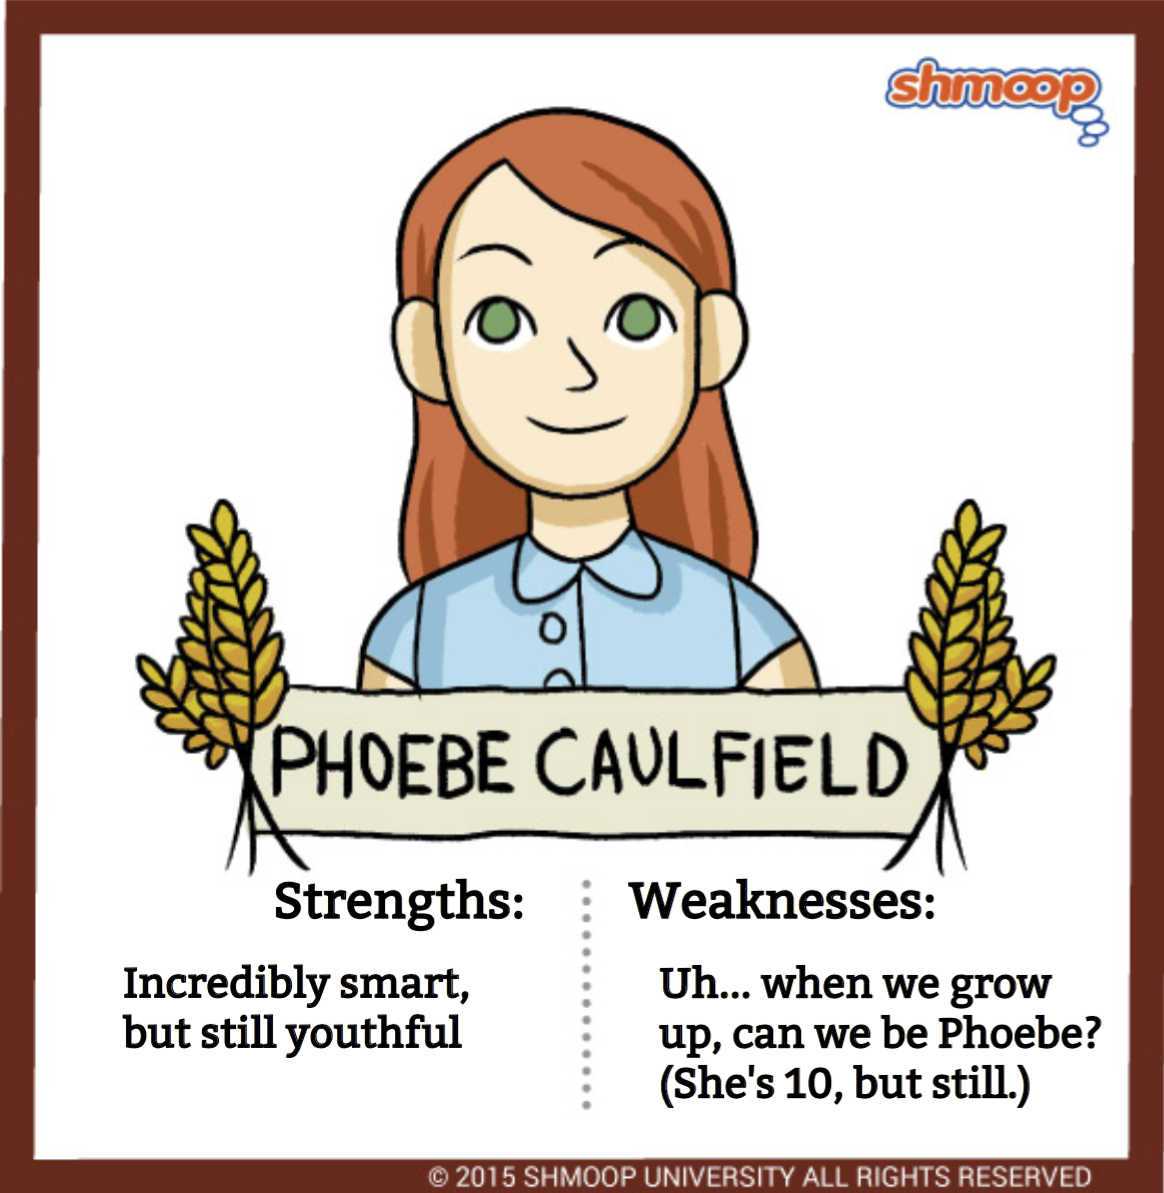 Phoebe Caulfield in The Catcher in the Rye - Chart